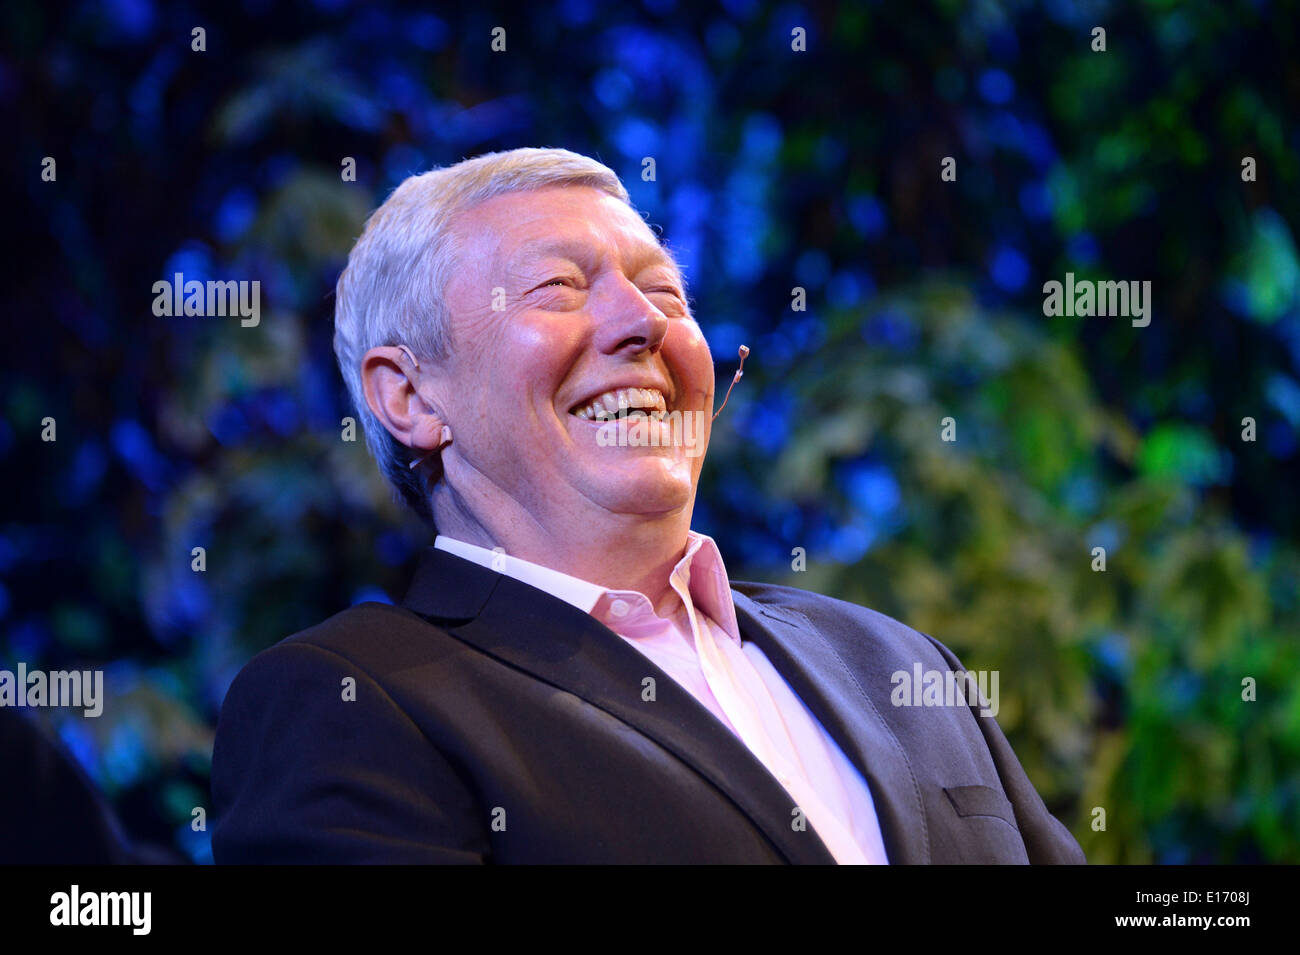 Hay on Wye, Wales UK. Sunday 25 May 2014. Former Labour cabinet member, and Orwell Prize winning author, ALAN JOHNSON  the fourth day of the 2014 Daily Telegraph Hay Literature Festival, Wales UK photo Credit: keith morris/Alamy Live News - Stock Image